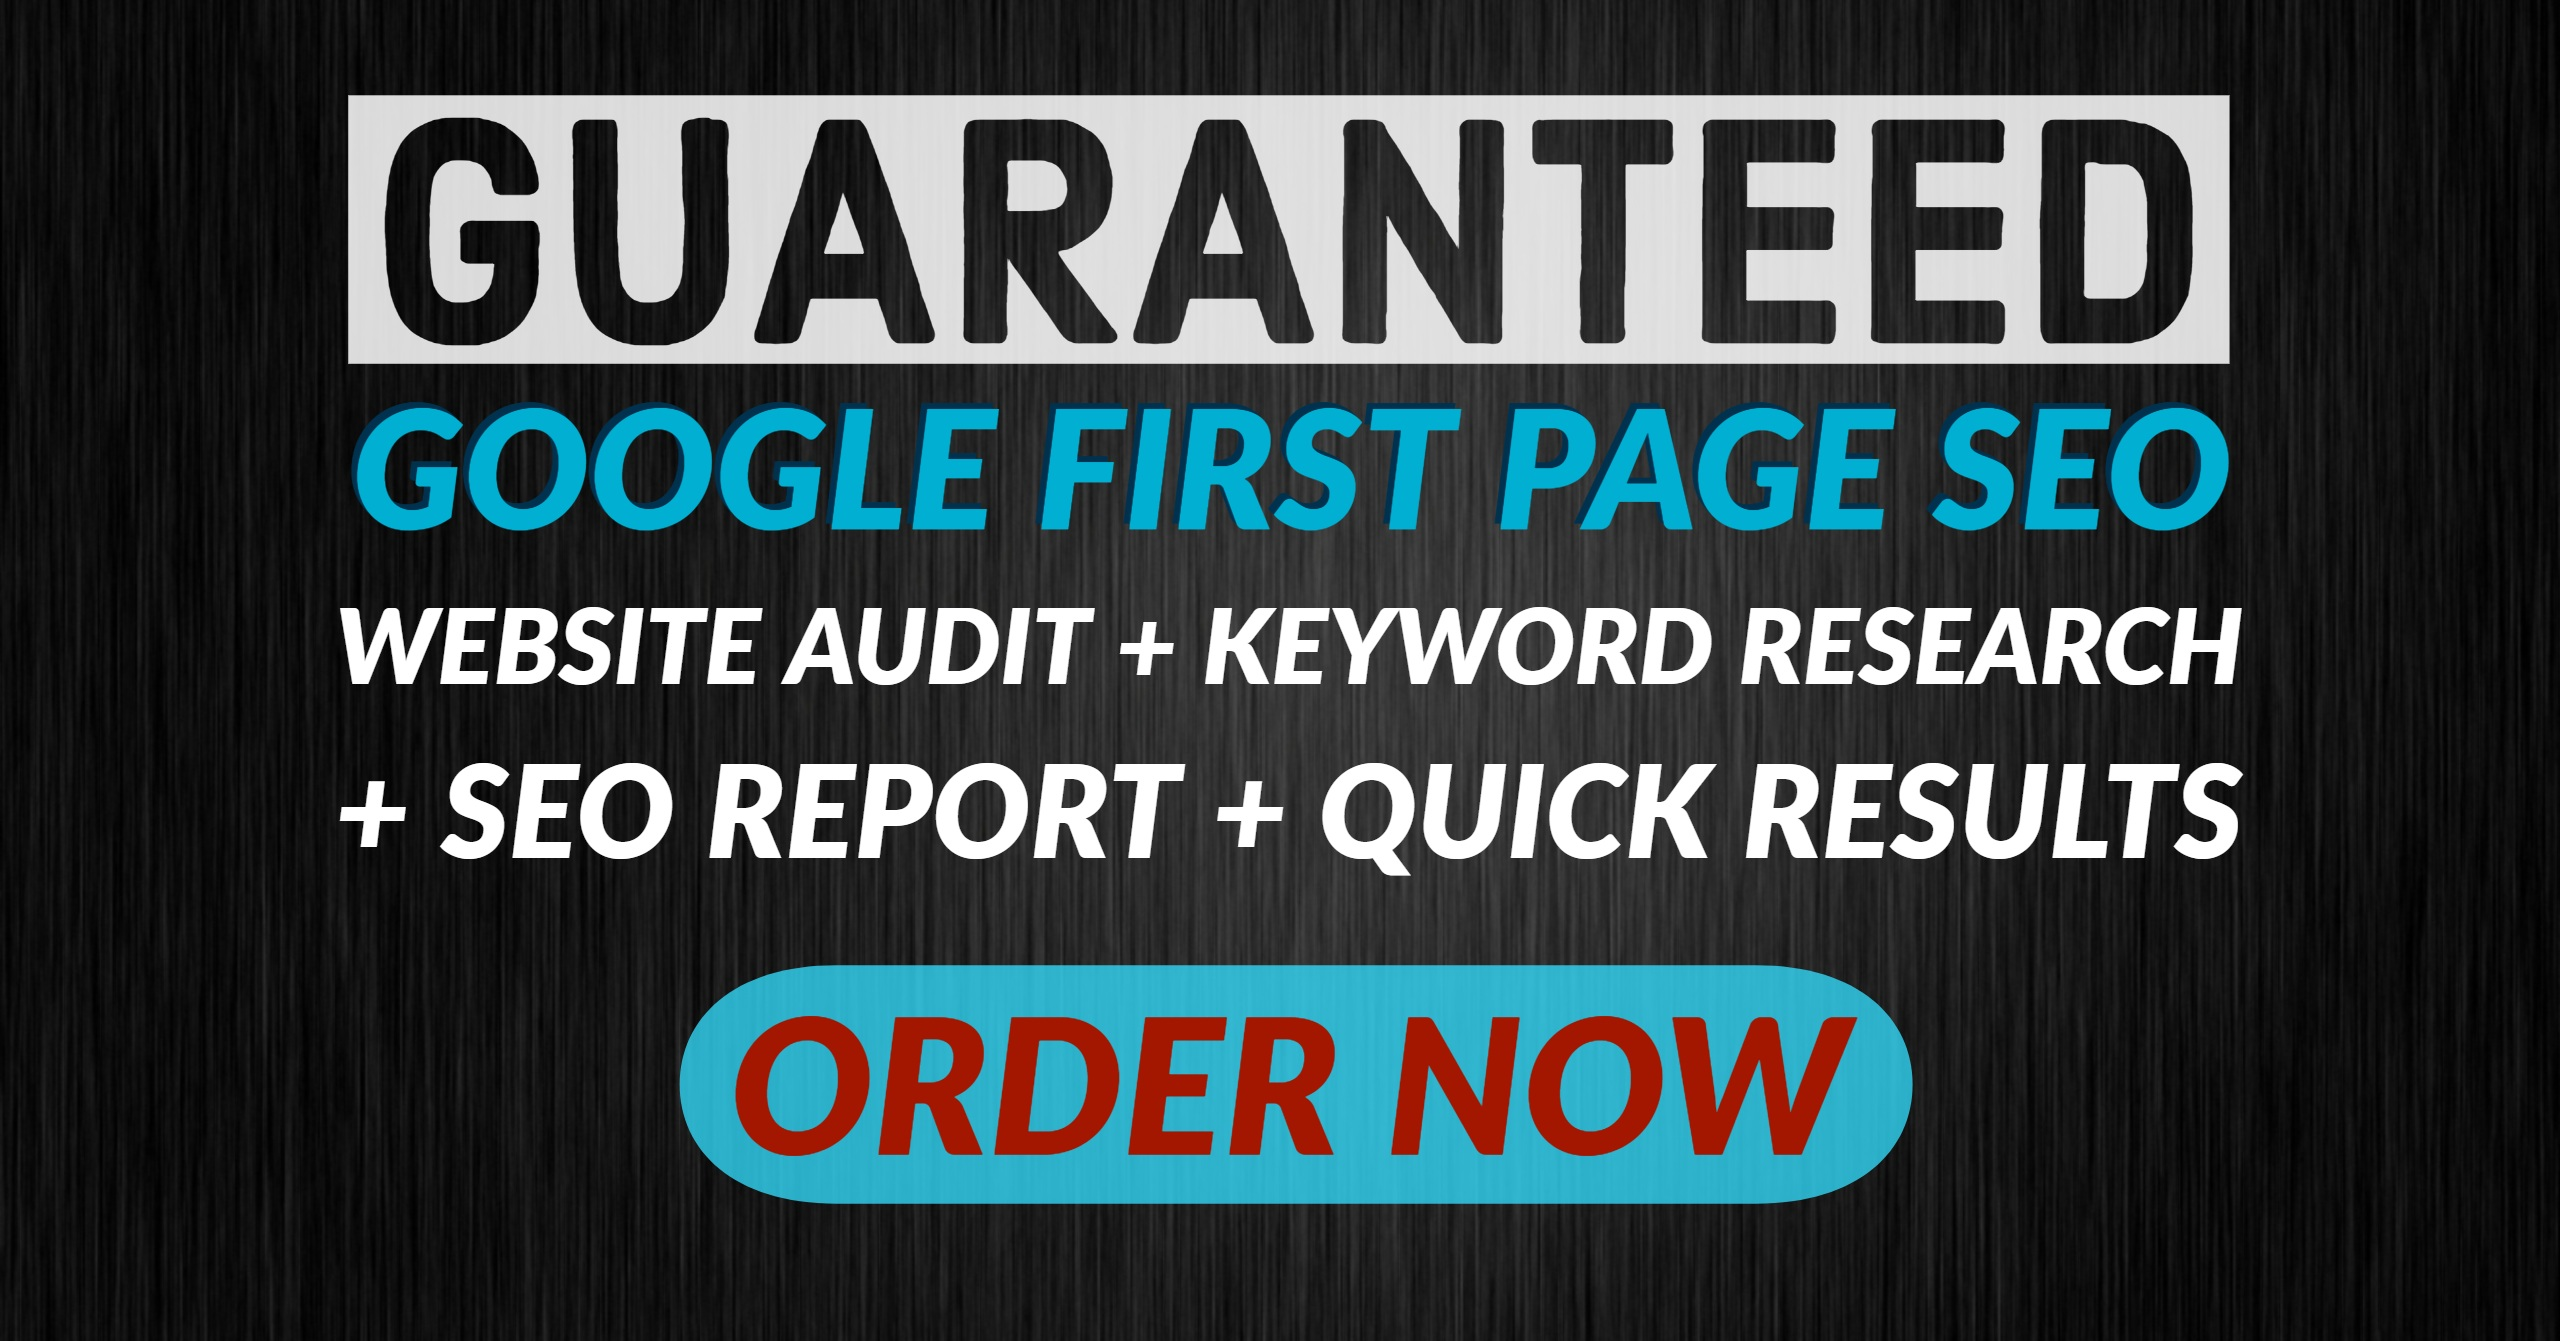 Google first page SEO SERVICE, ORDER NOW BEFORE PRIC...